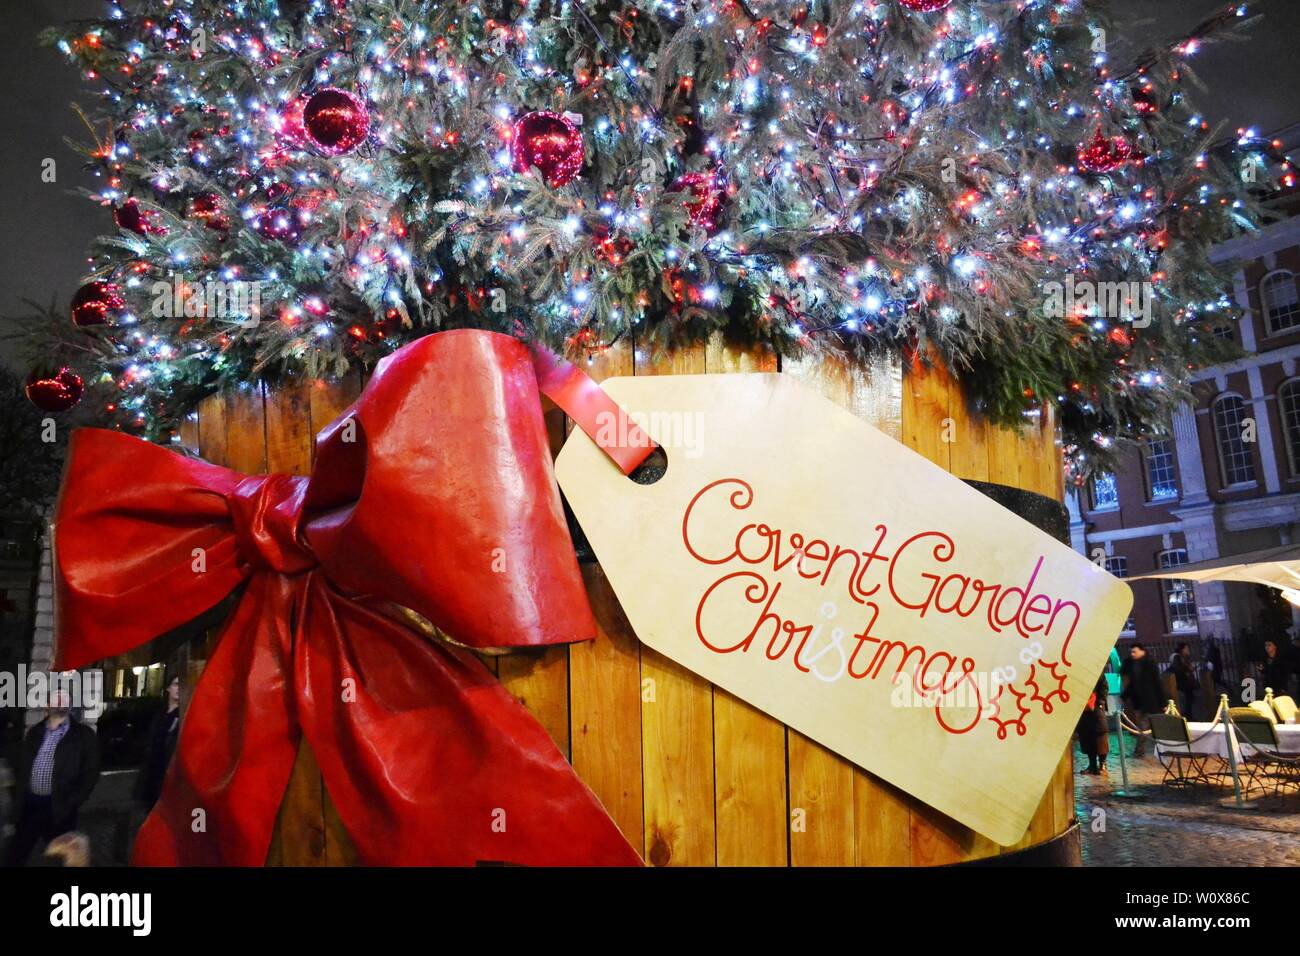 London/UK - November 27, 2013: Close-up view to traditional Christmas tree of the Covent Garden square  in a wooden barrel decorated with red bow. Stock Photo